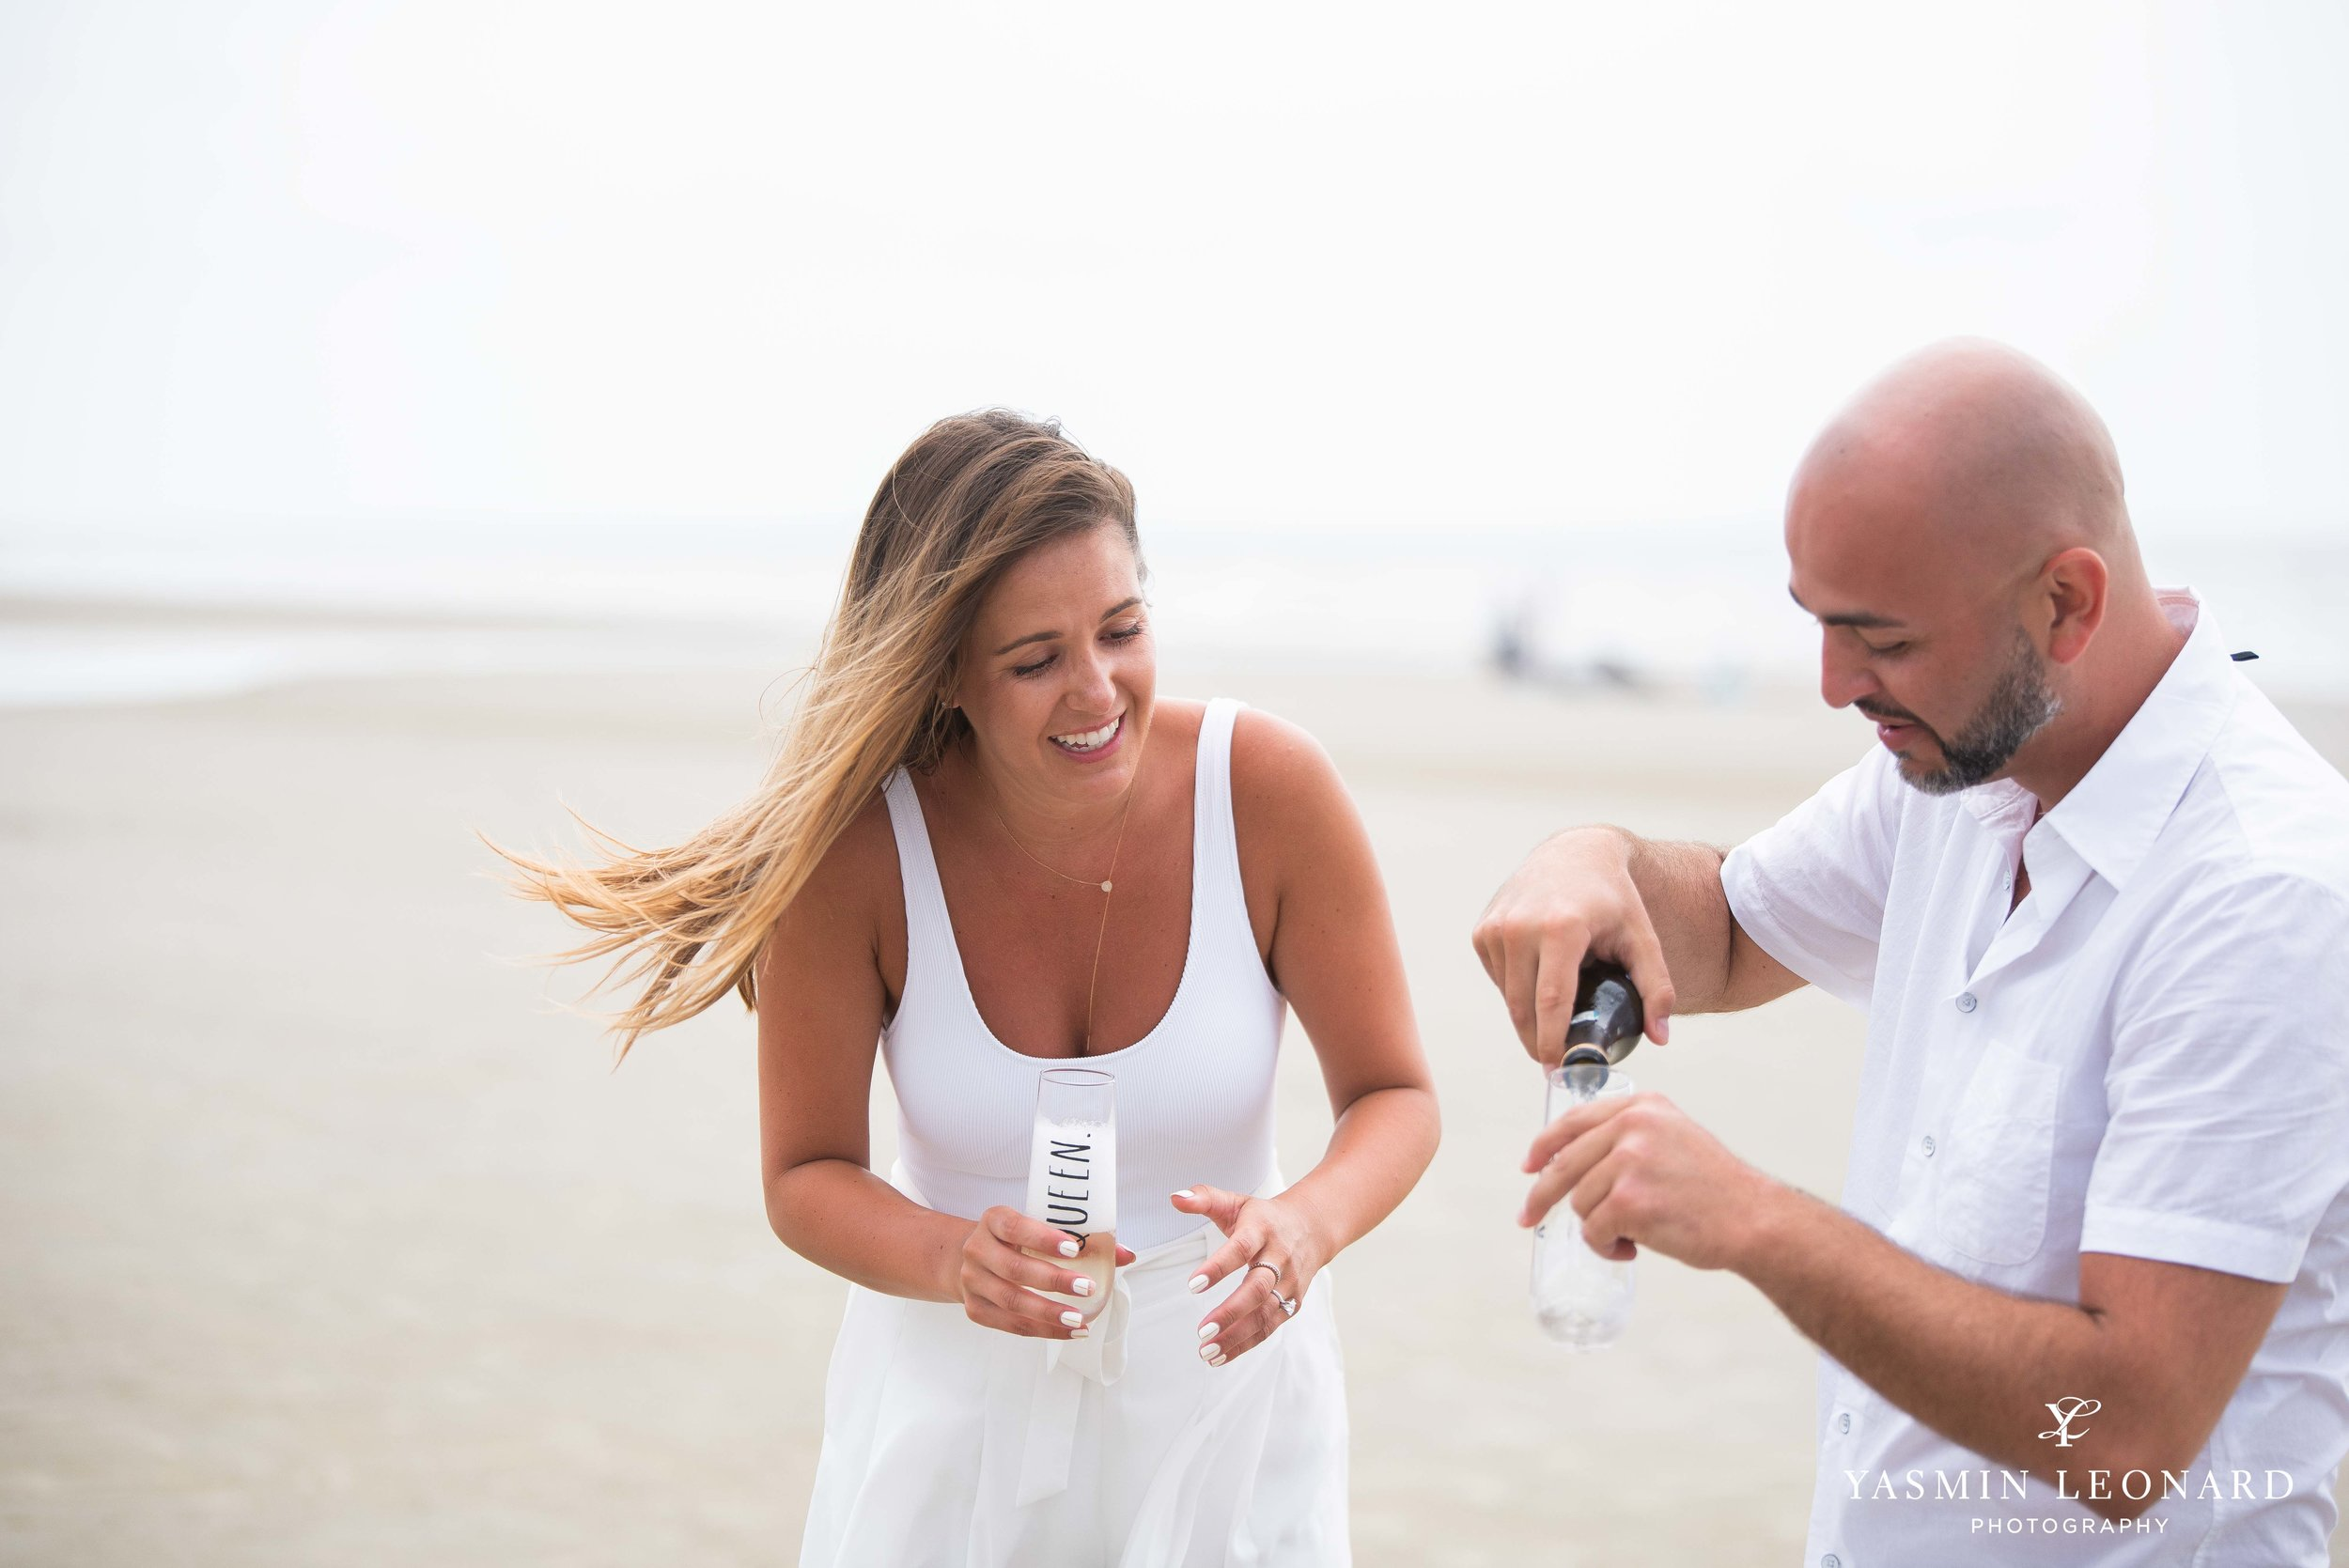 Beach Proposal - Beach Engagement Kiawah Island Photographer - NC Beach Photographer - How He Asked - NC Photographer - Proposal Ideas - Engagement Ring - Yasmin Leonard Photography-5.jpg